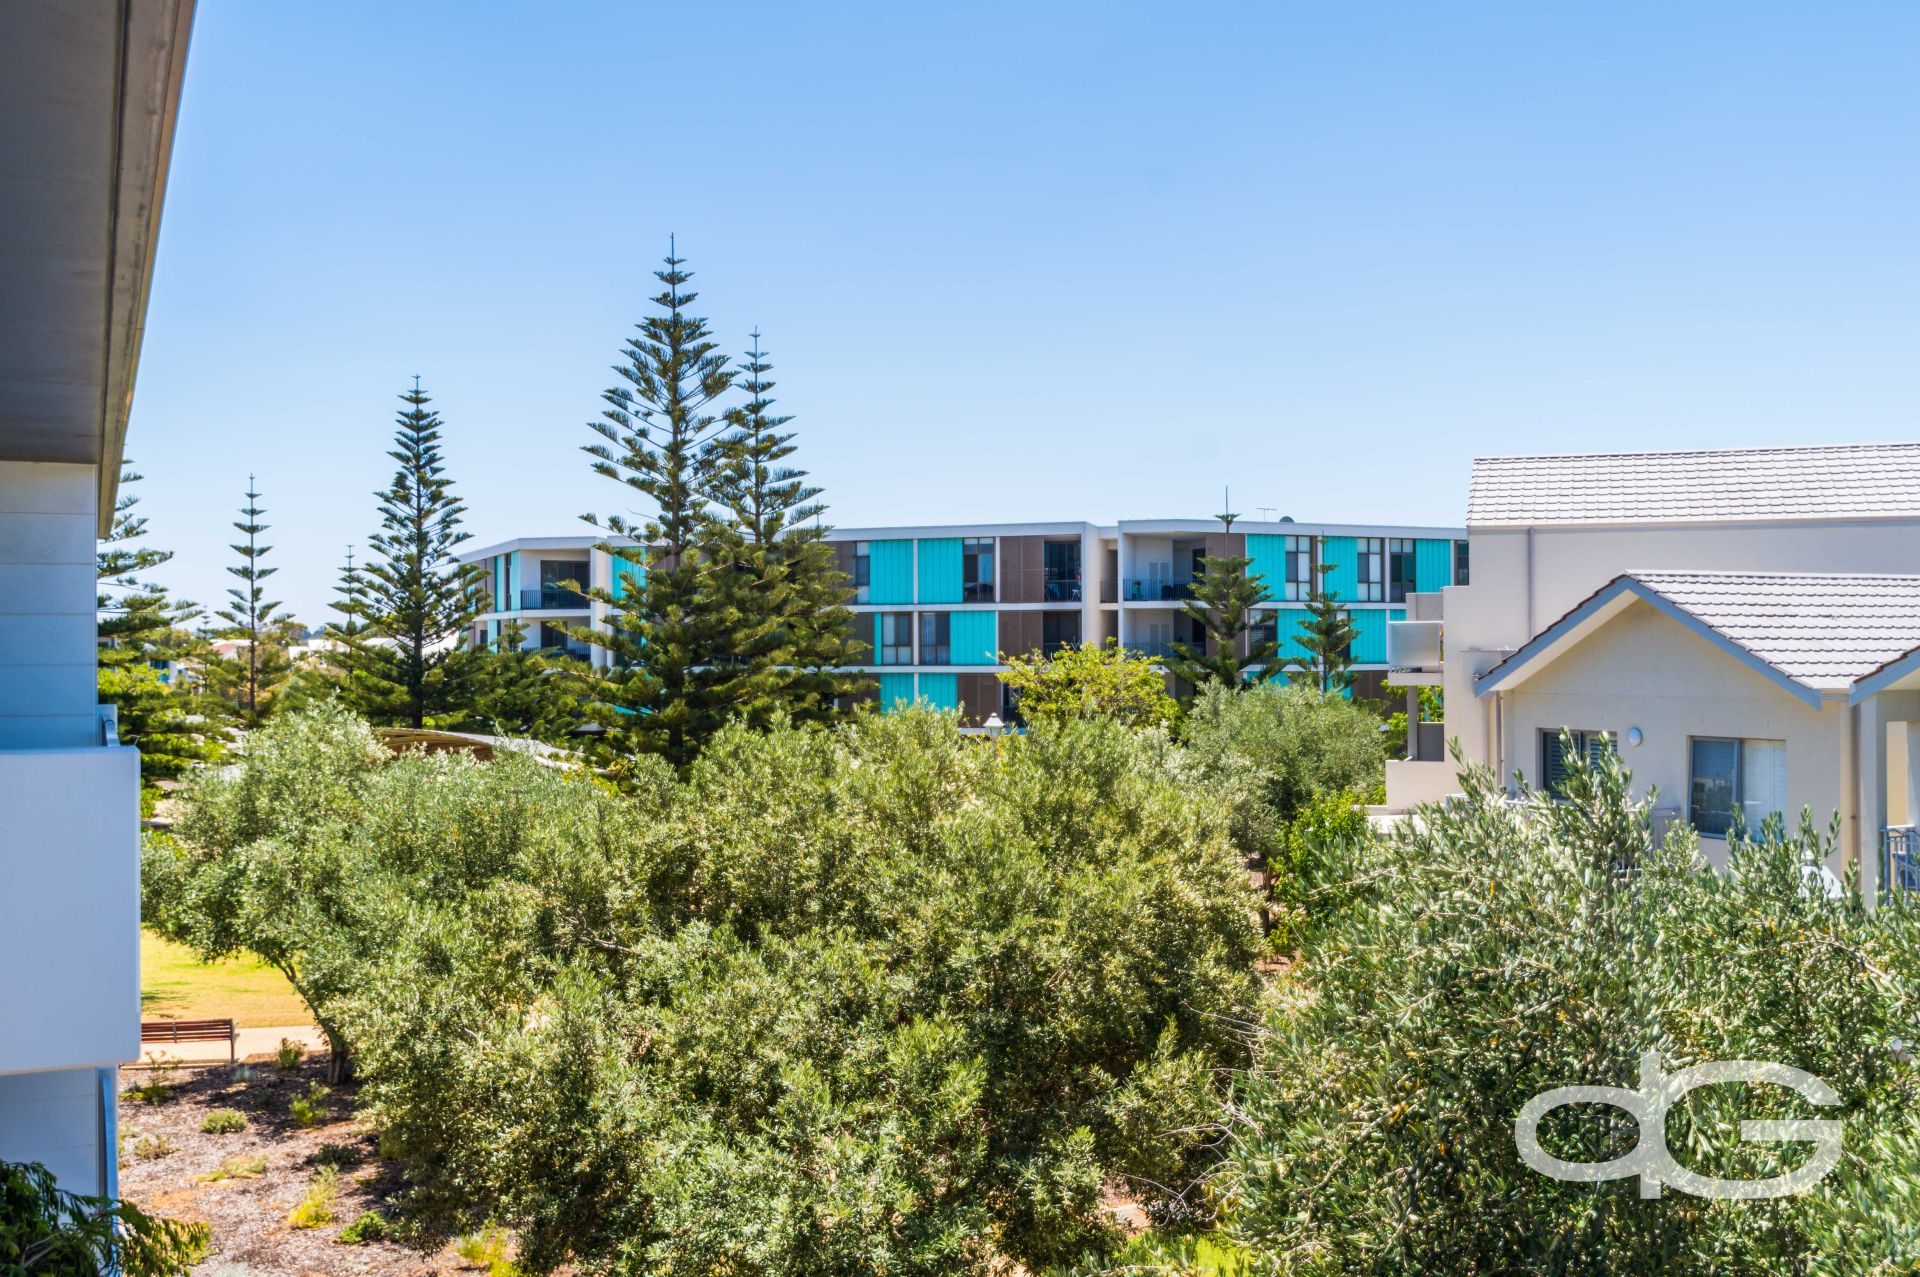 50/34 Shoalwater Street, North Coogee